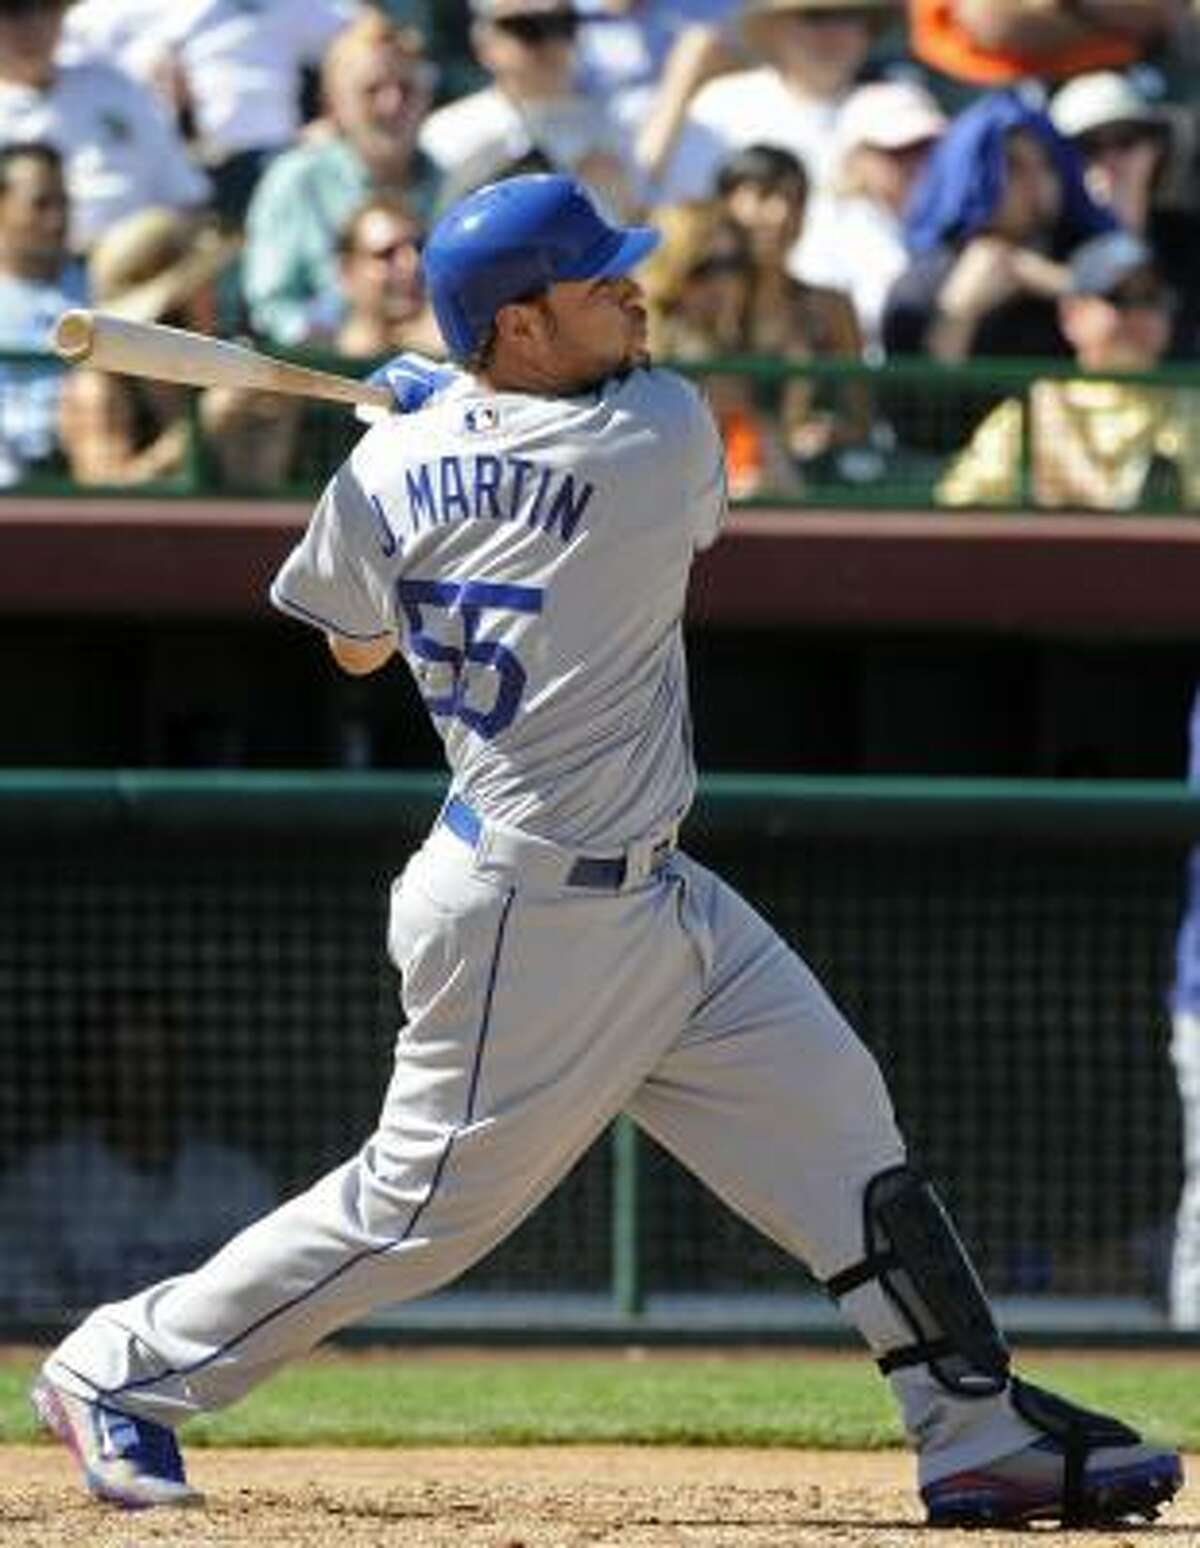 Los Angeles Dodgers' Russell Martin hits a home run and a two-run double in Thursday's 16-7 win over the Giants.